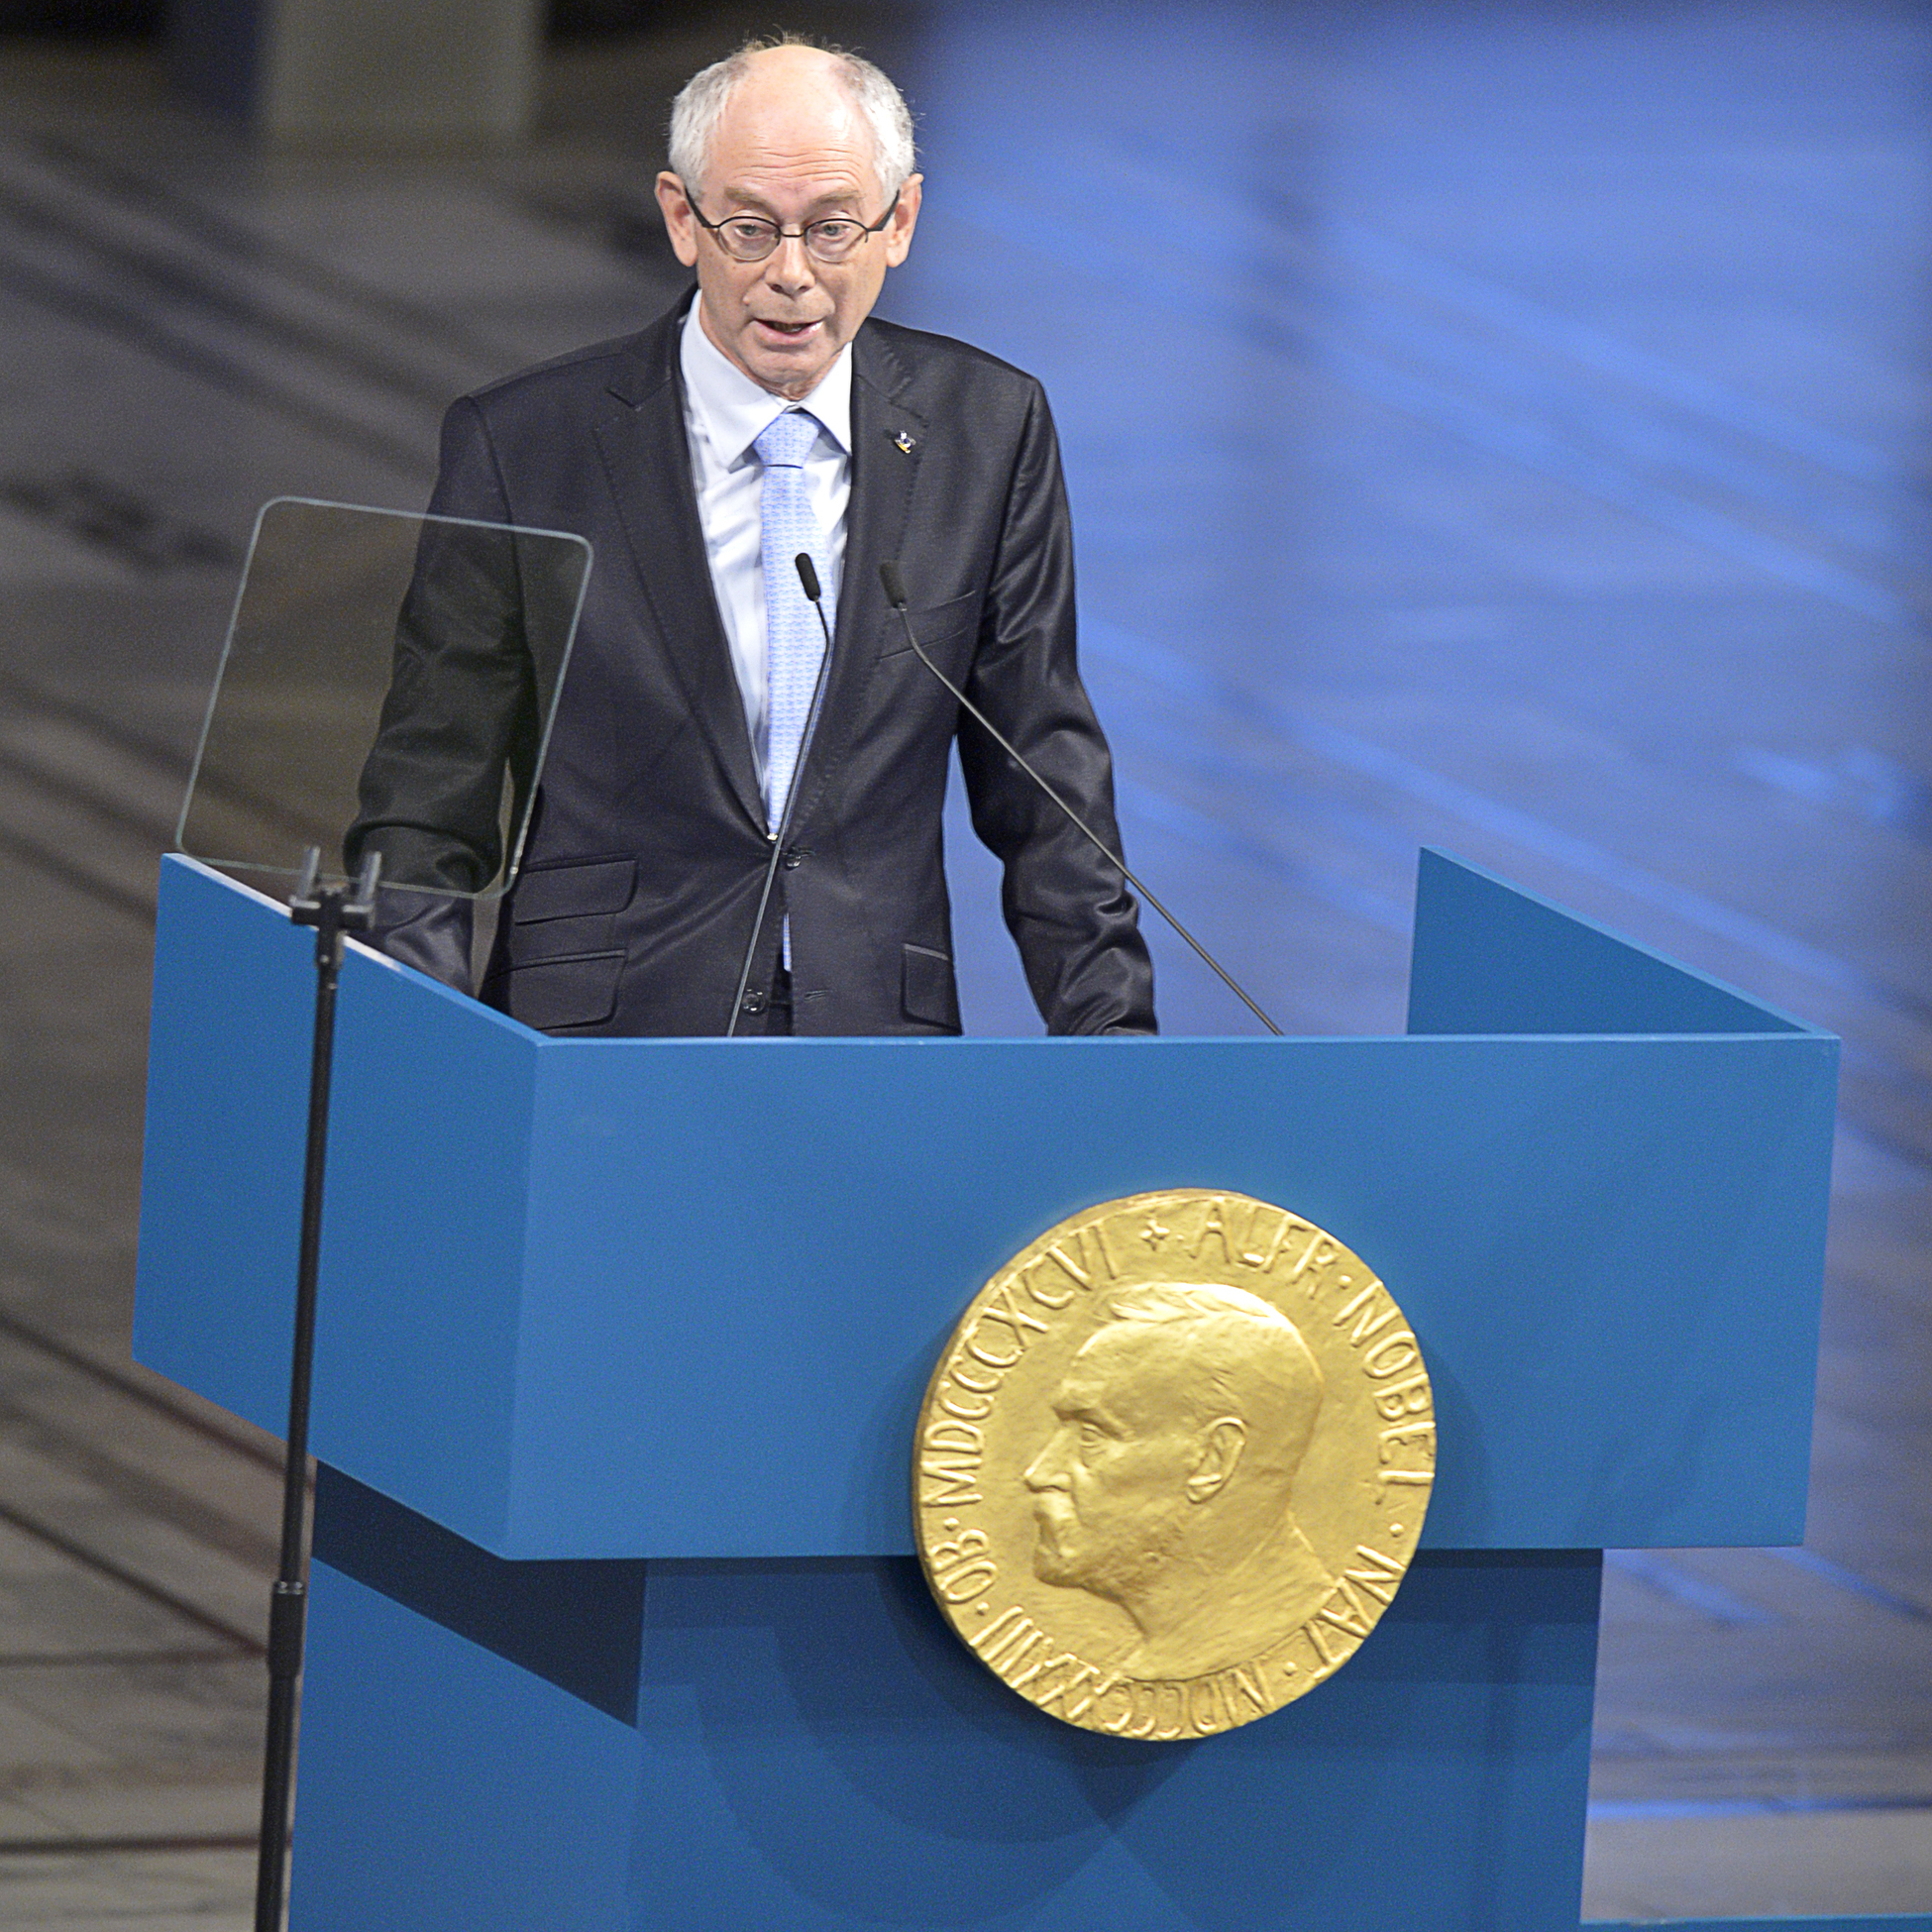 European Union President Herman Van Rompuy of Belgium at the Nobel Peace Prize ceremony in Oslo.